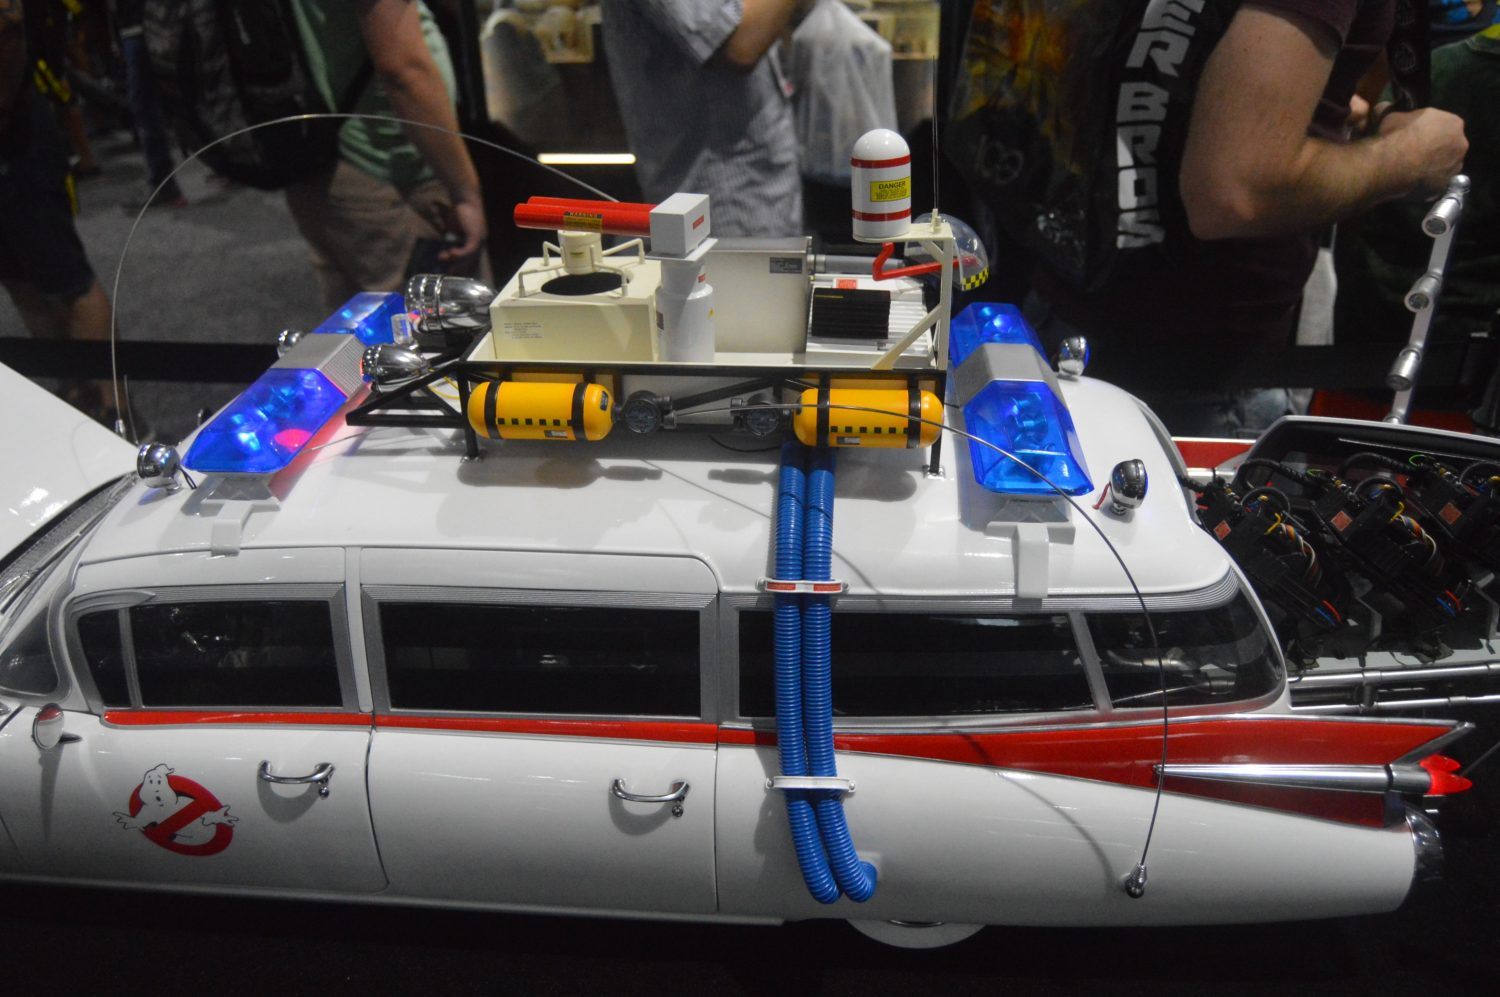 SDCC 2017 – Blitzway Ghostbusters Ecto-1 Sixth Scale Vehicle & Star Wars The Millennium Falcon